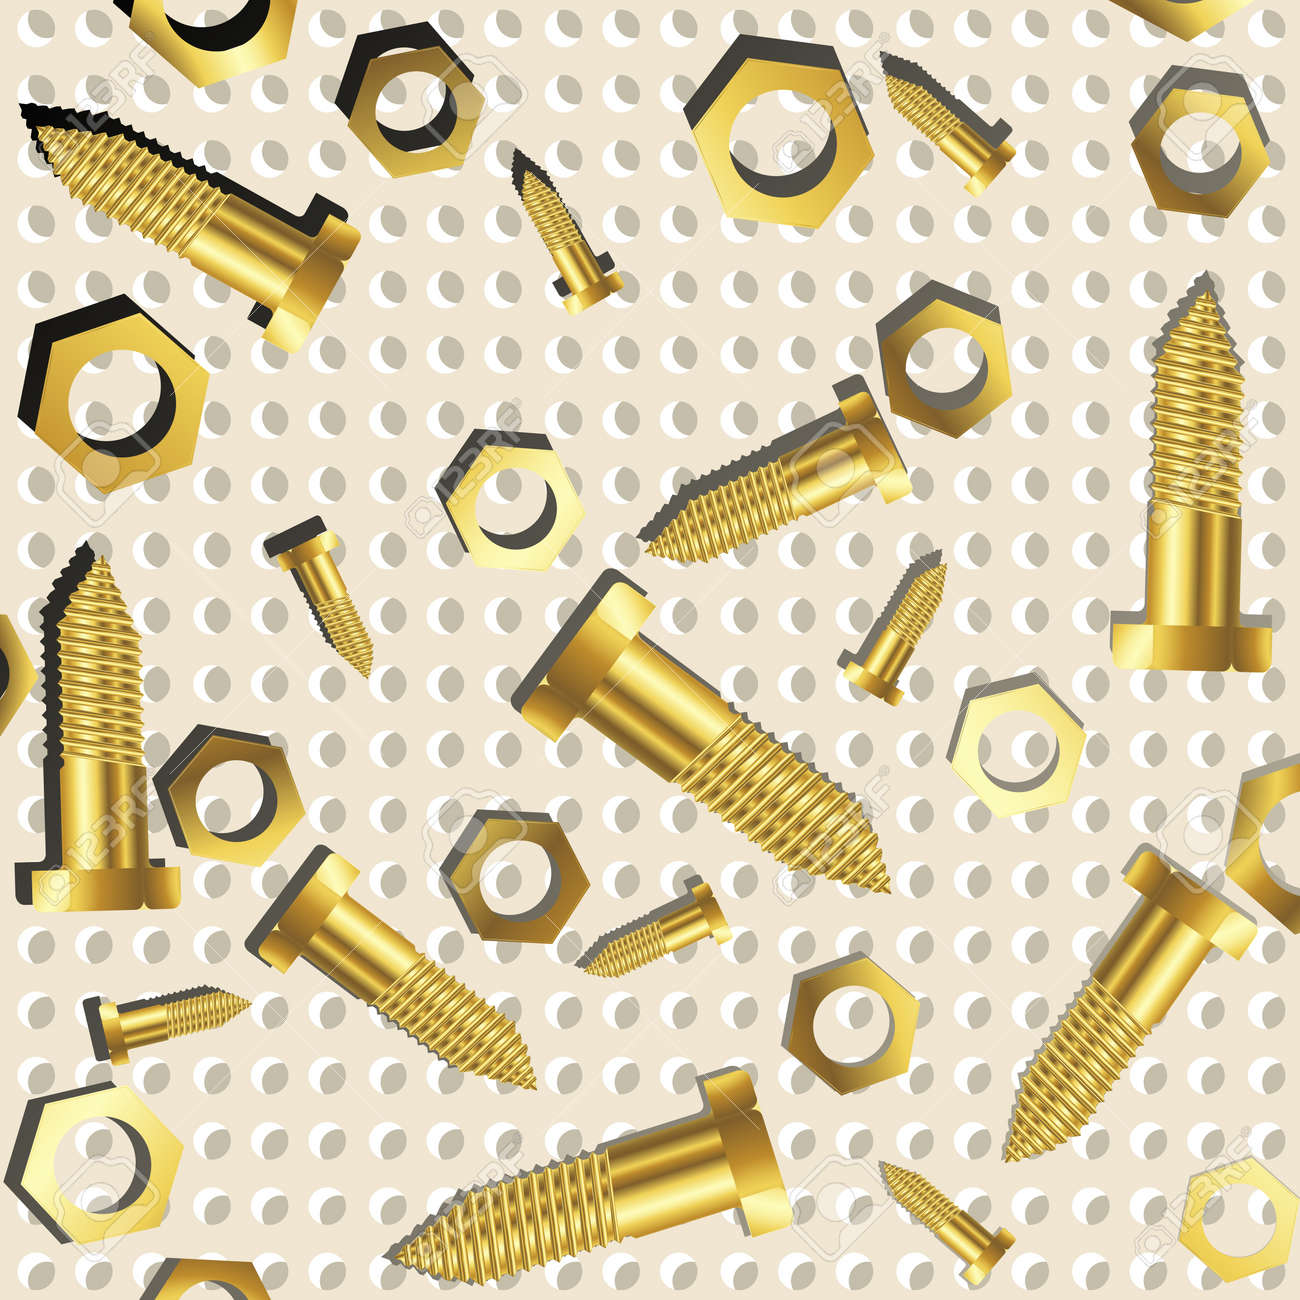 screws and nuts over metallic texture, abstract art illustration Stock Photo - 8545041